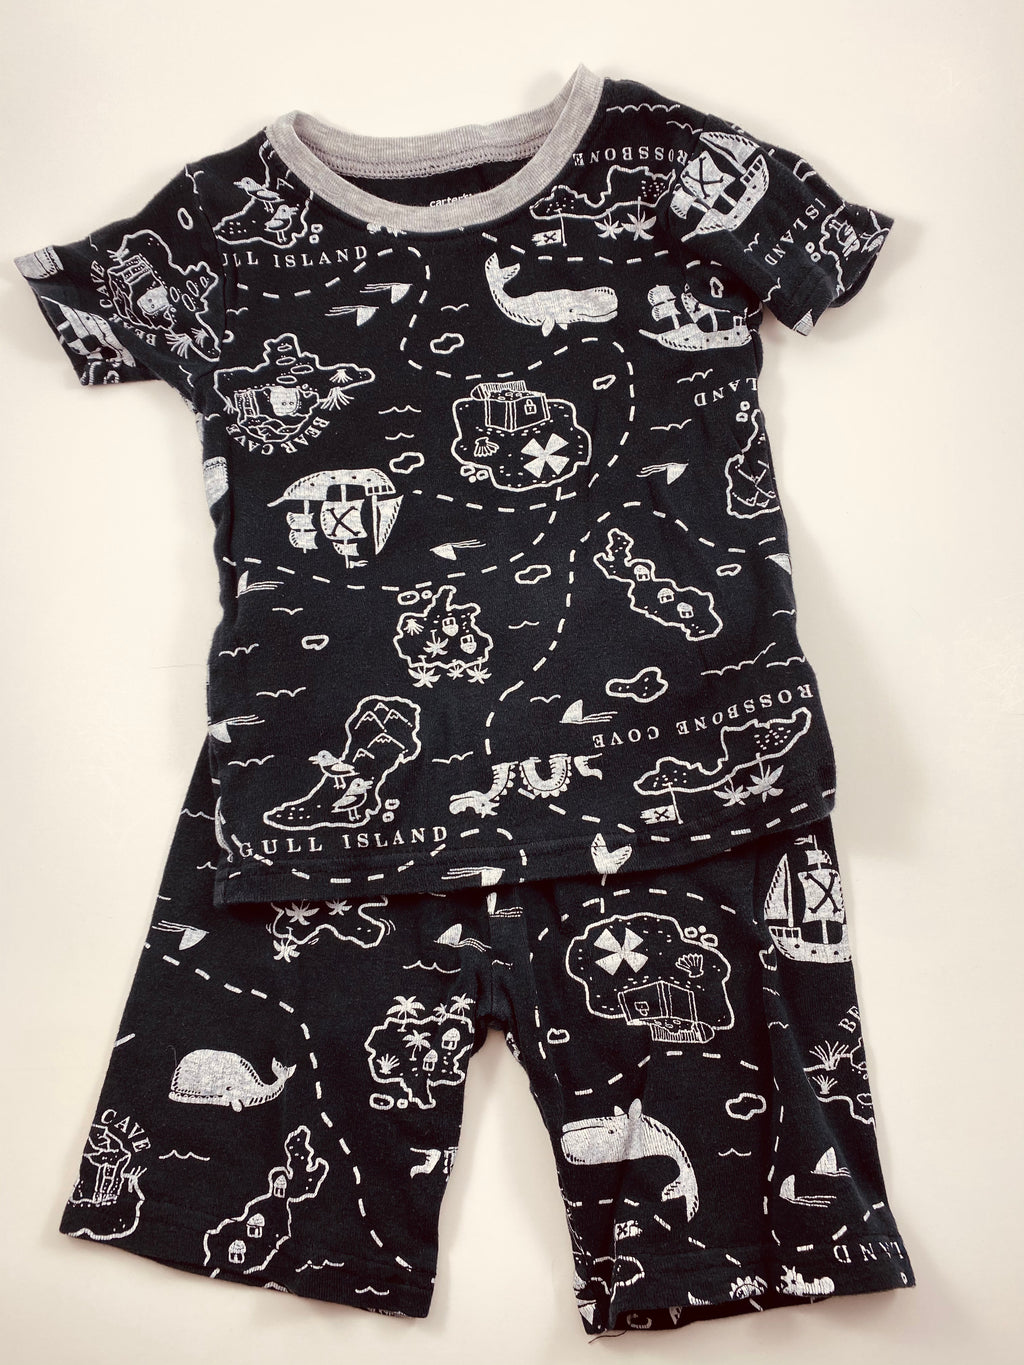 Boy's Short Sleeve Pajamas - Size 3t